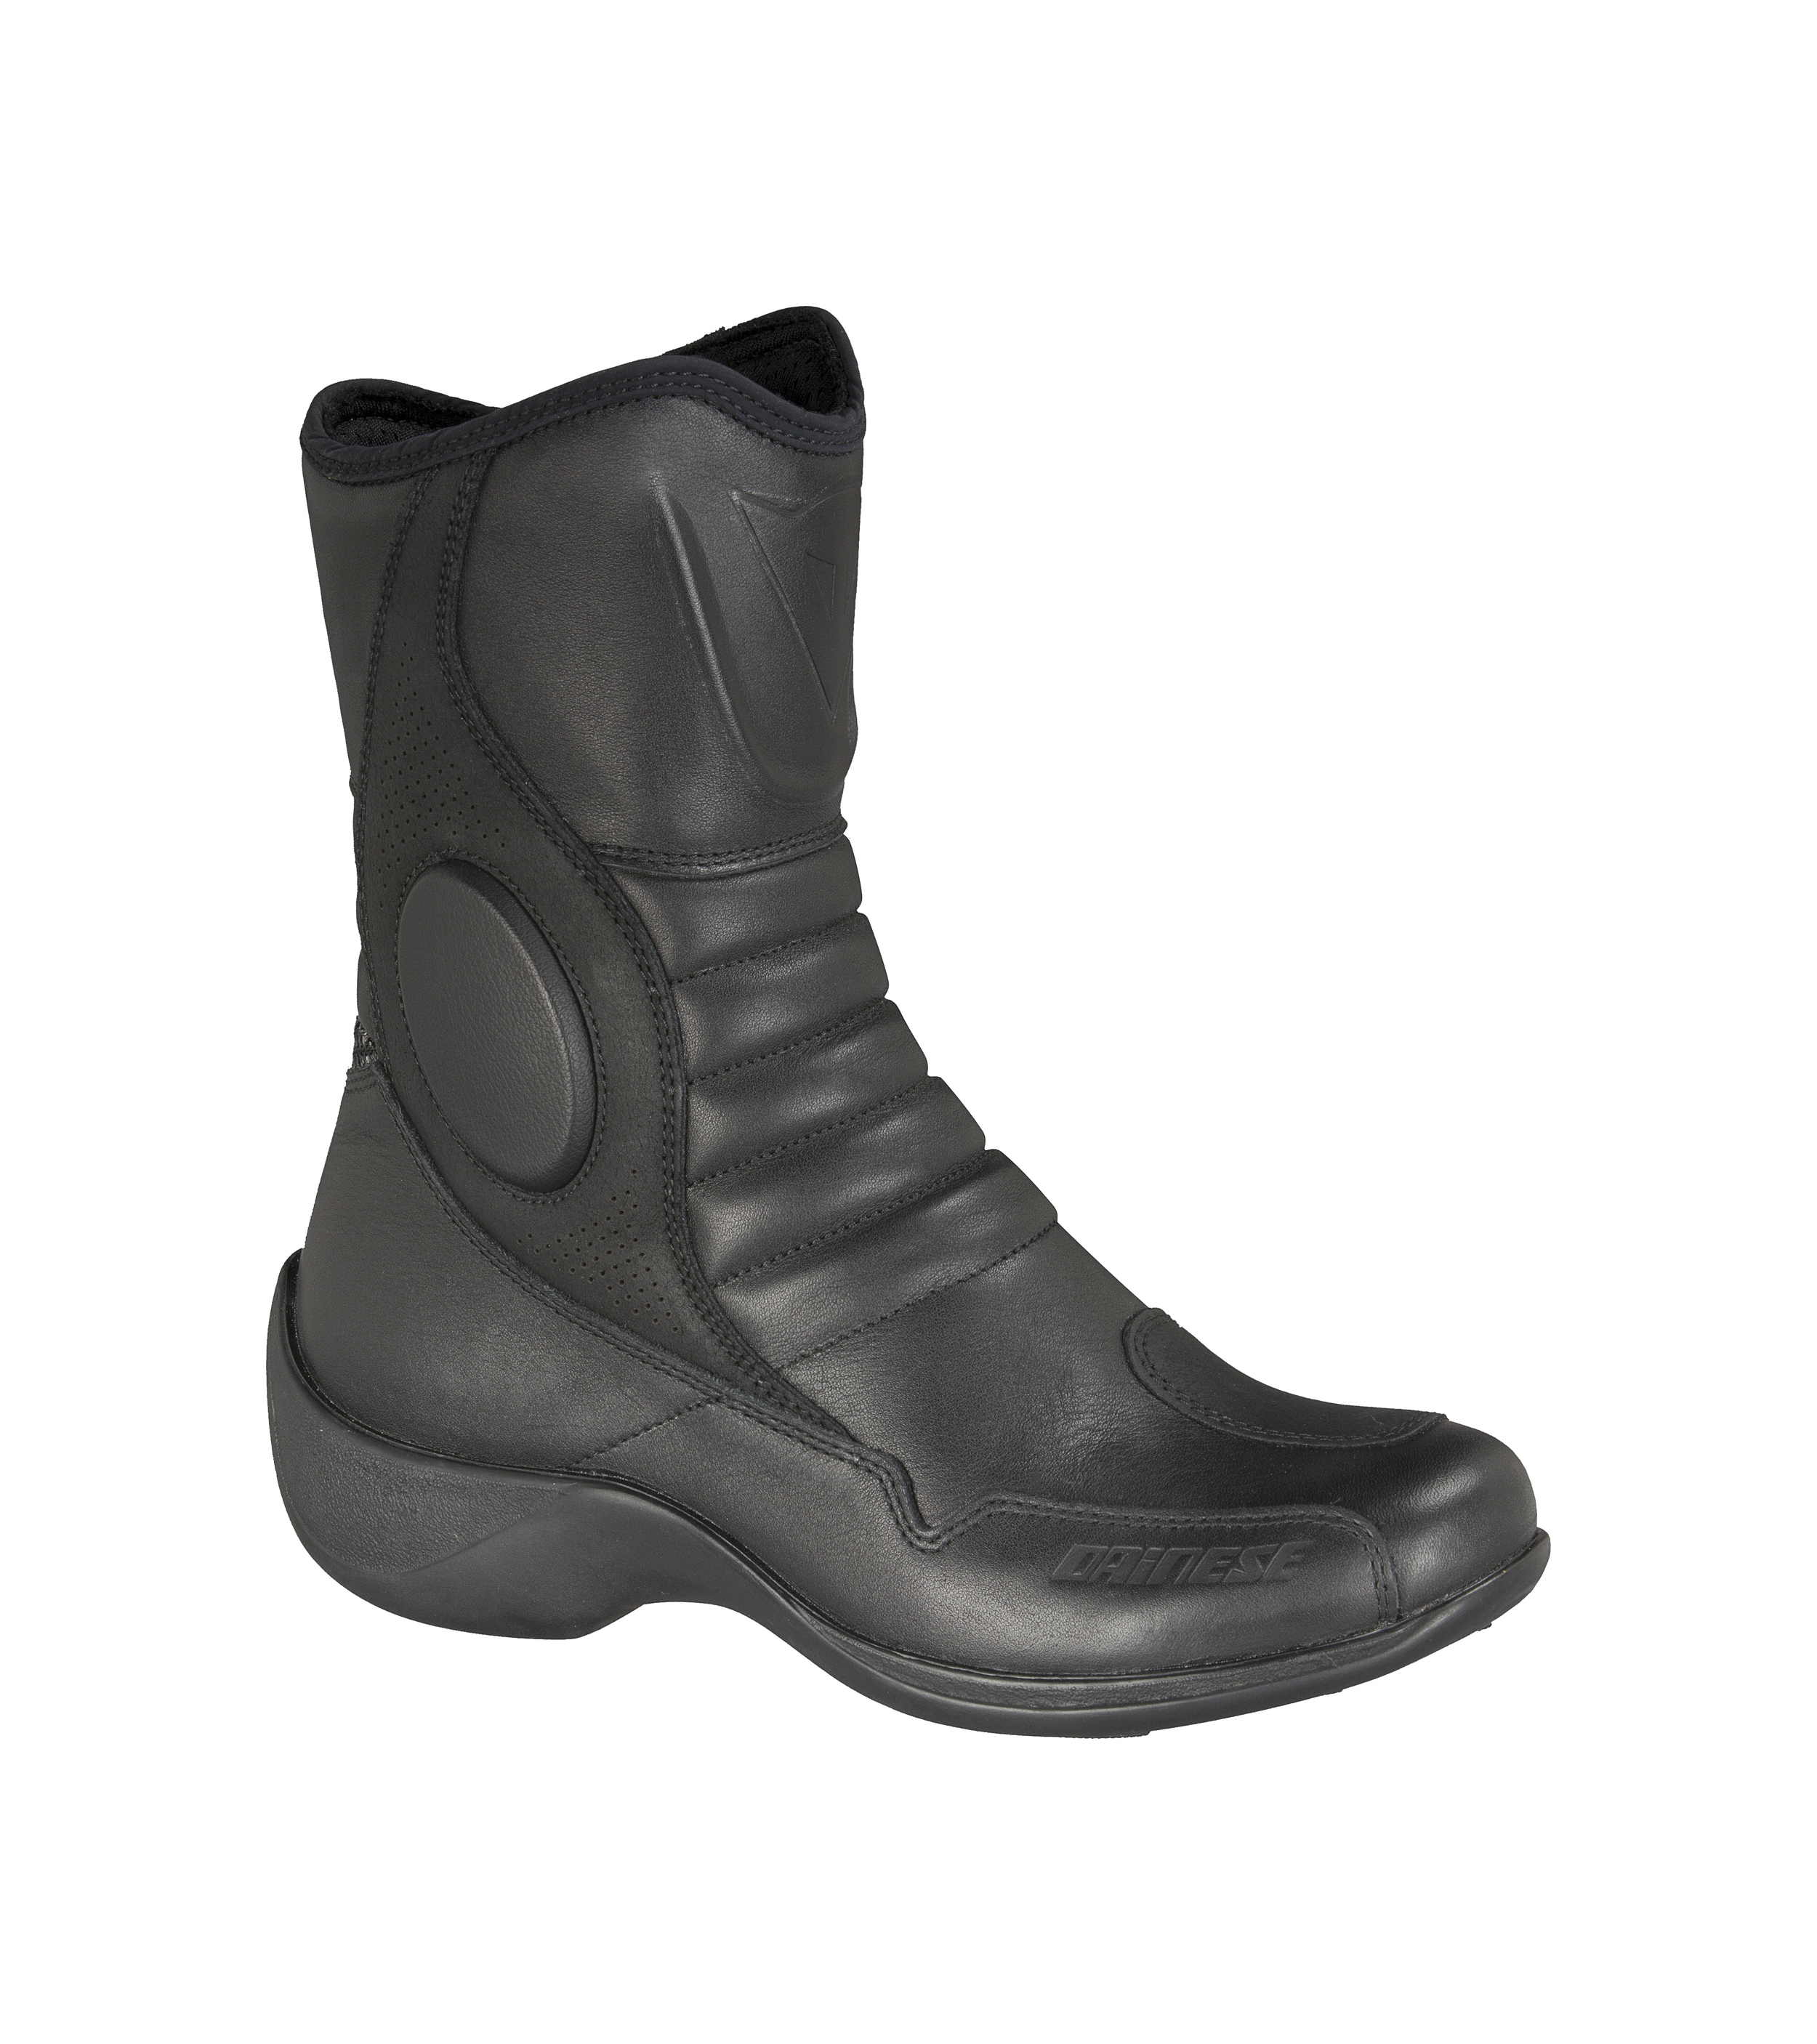 Recommendations for Women's Motorcycle Boots — GearChic